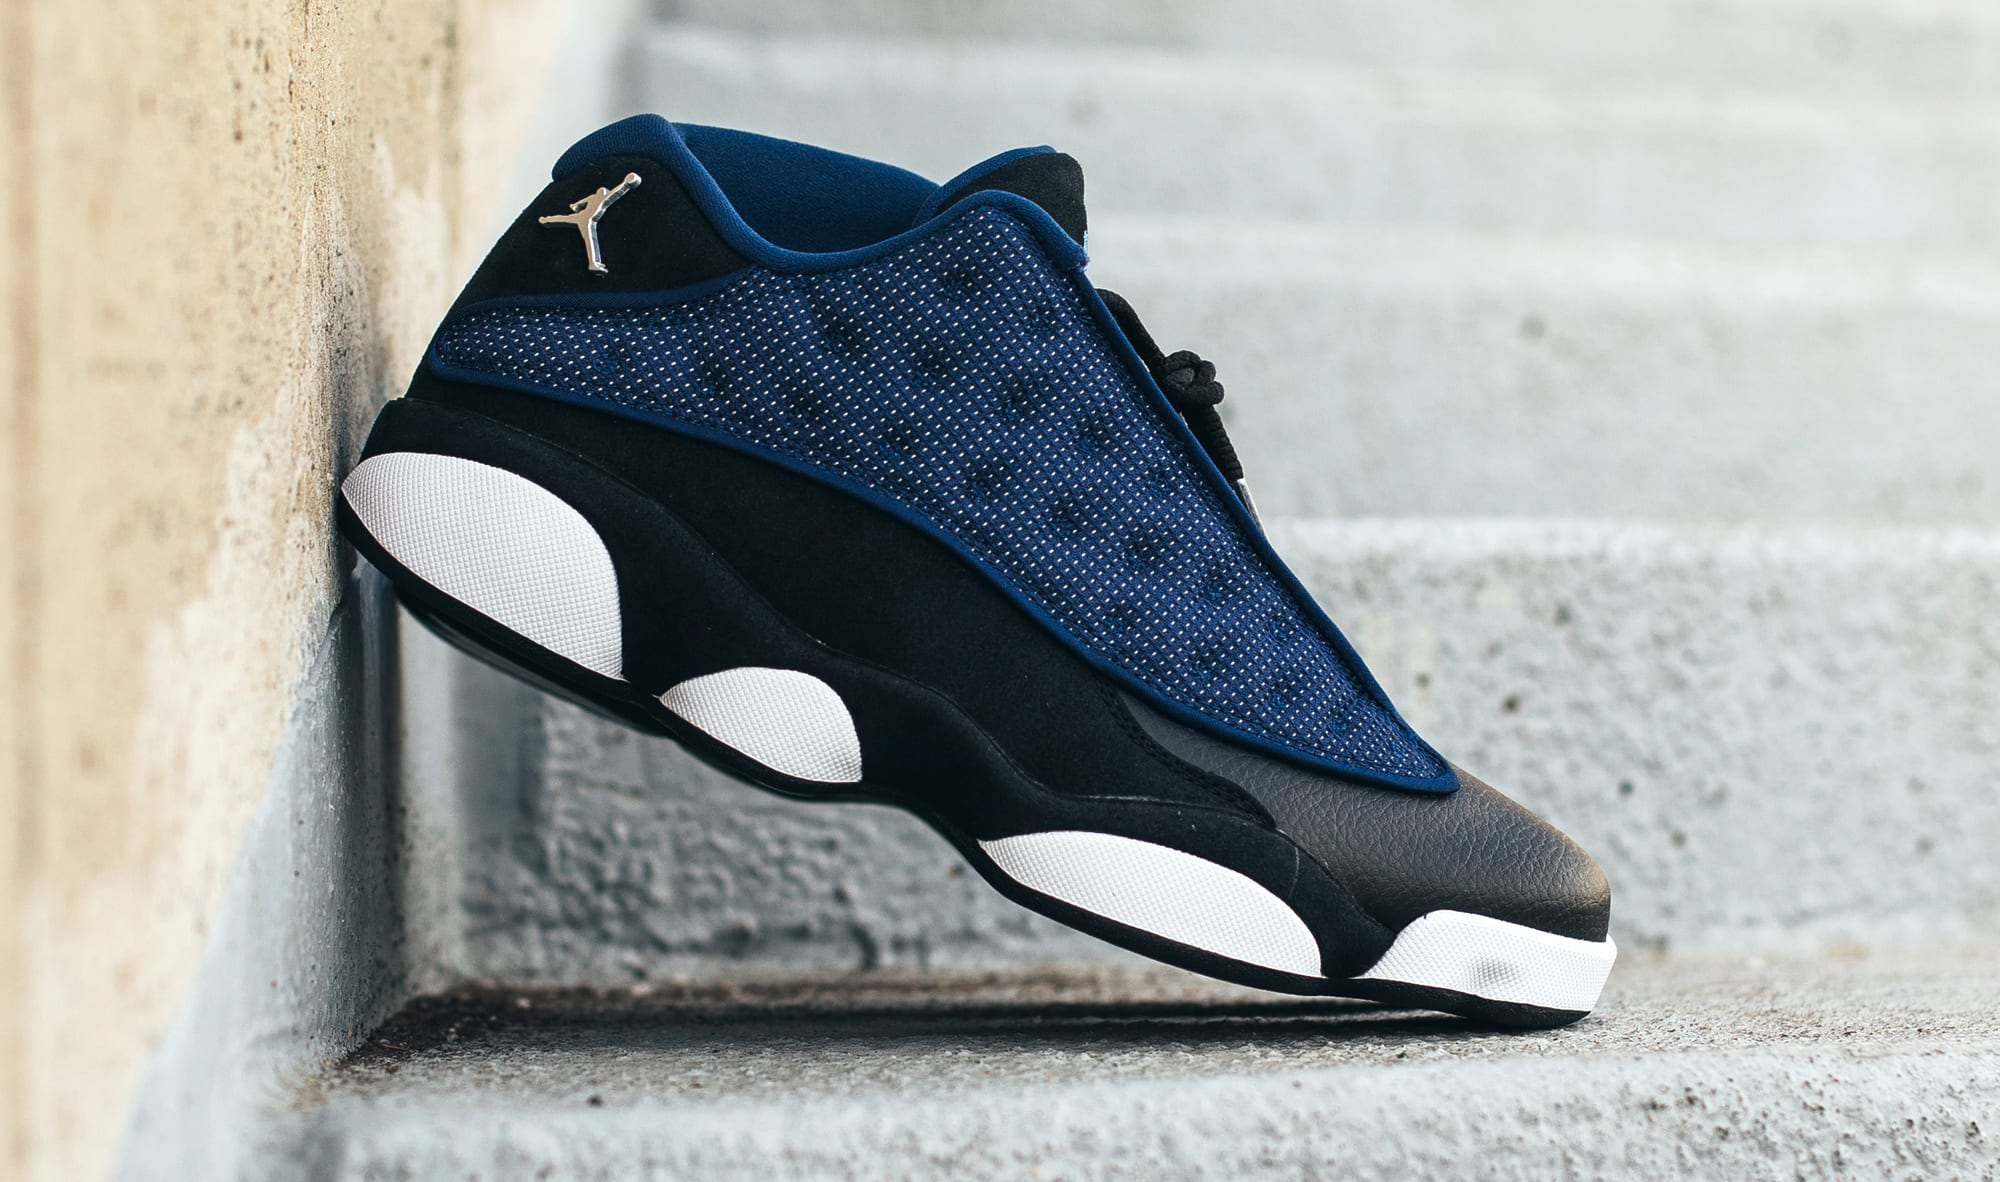 Brave Blue Air Jordan 13 Low 310810-407 Pair